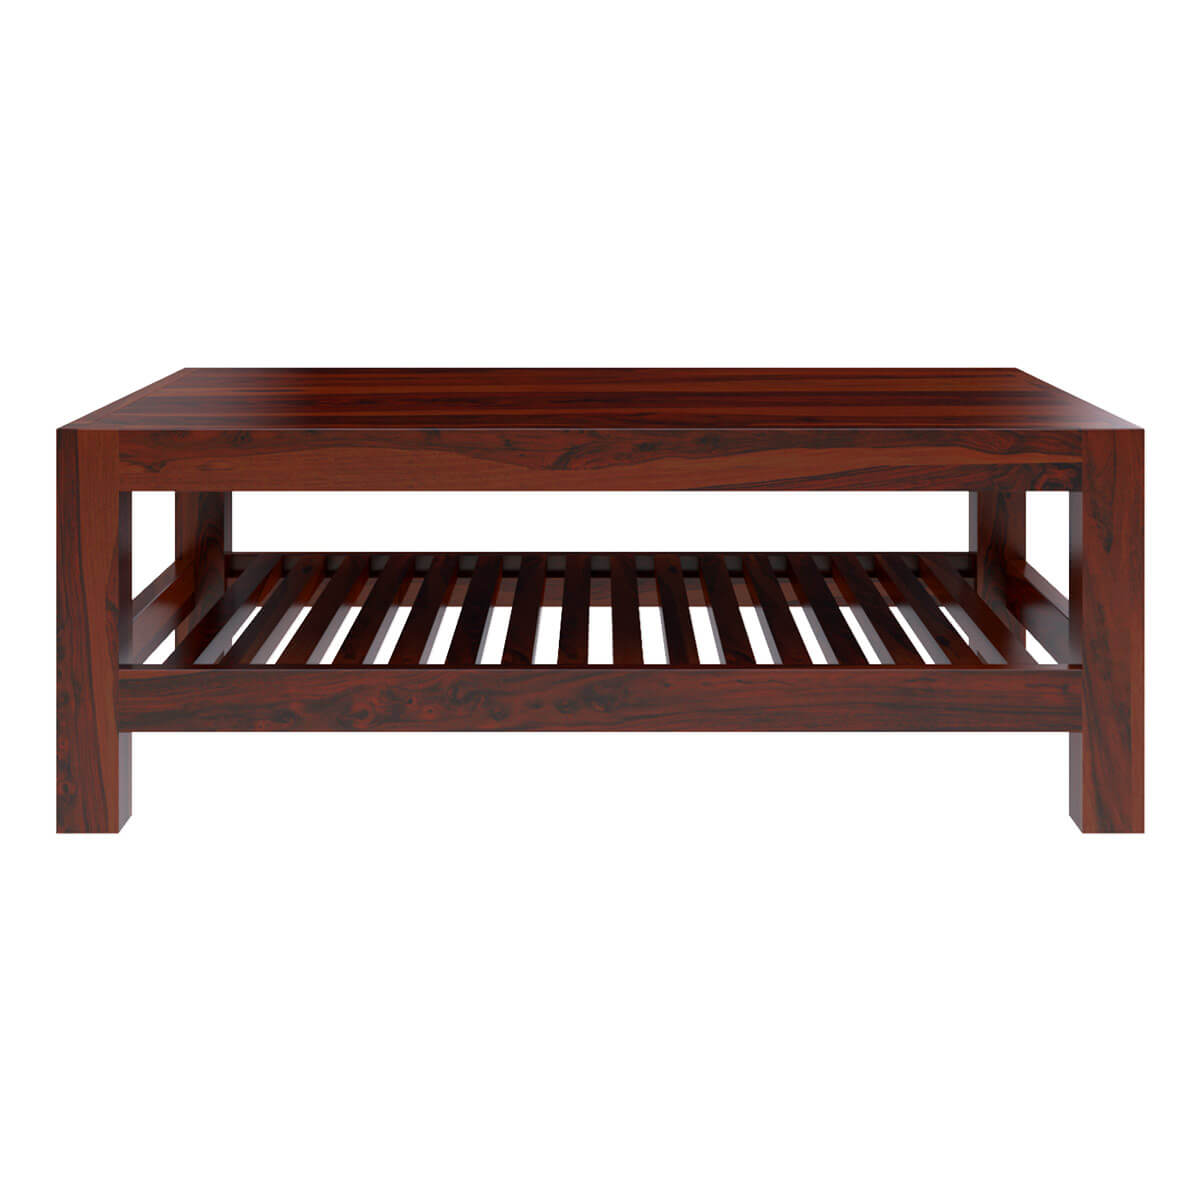 Solid wood portland contemporary 2 tier coffee table for Solid wood coffee table